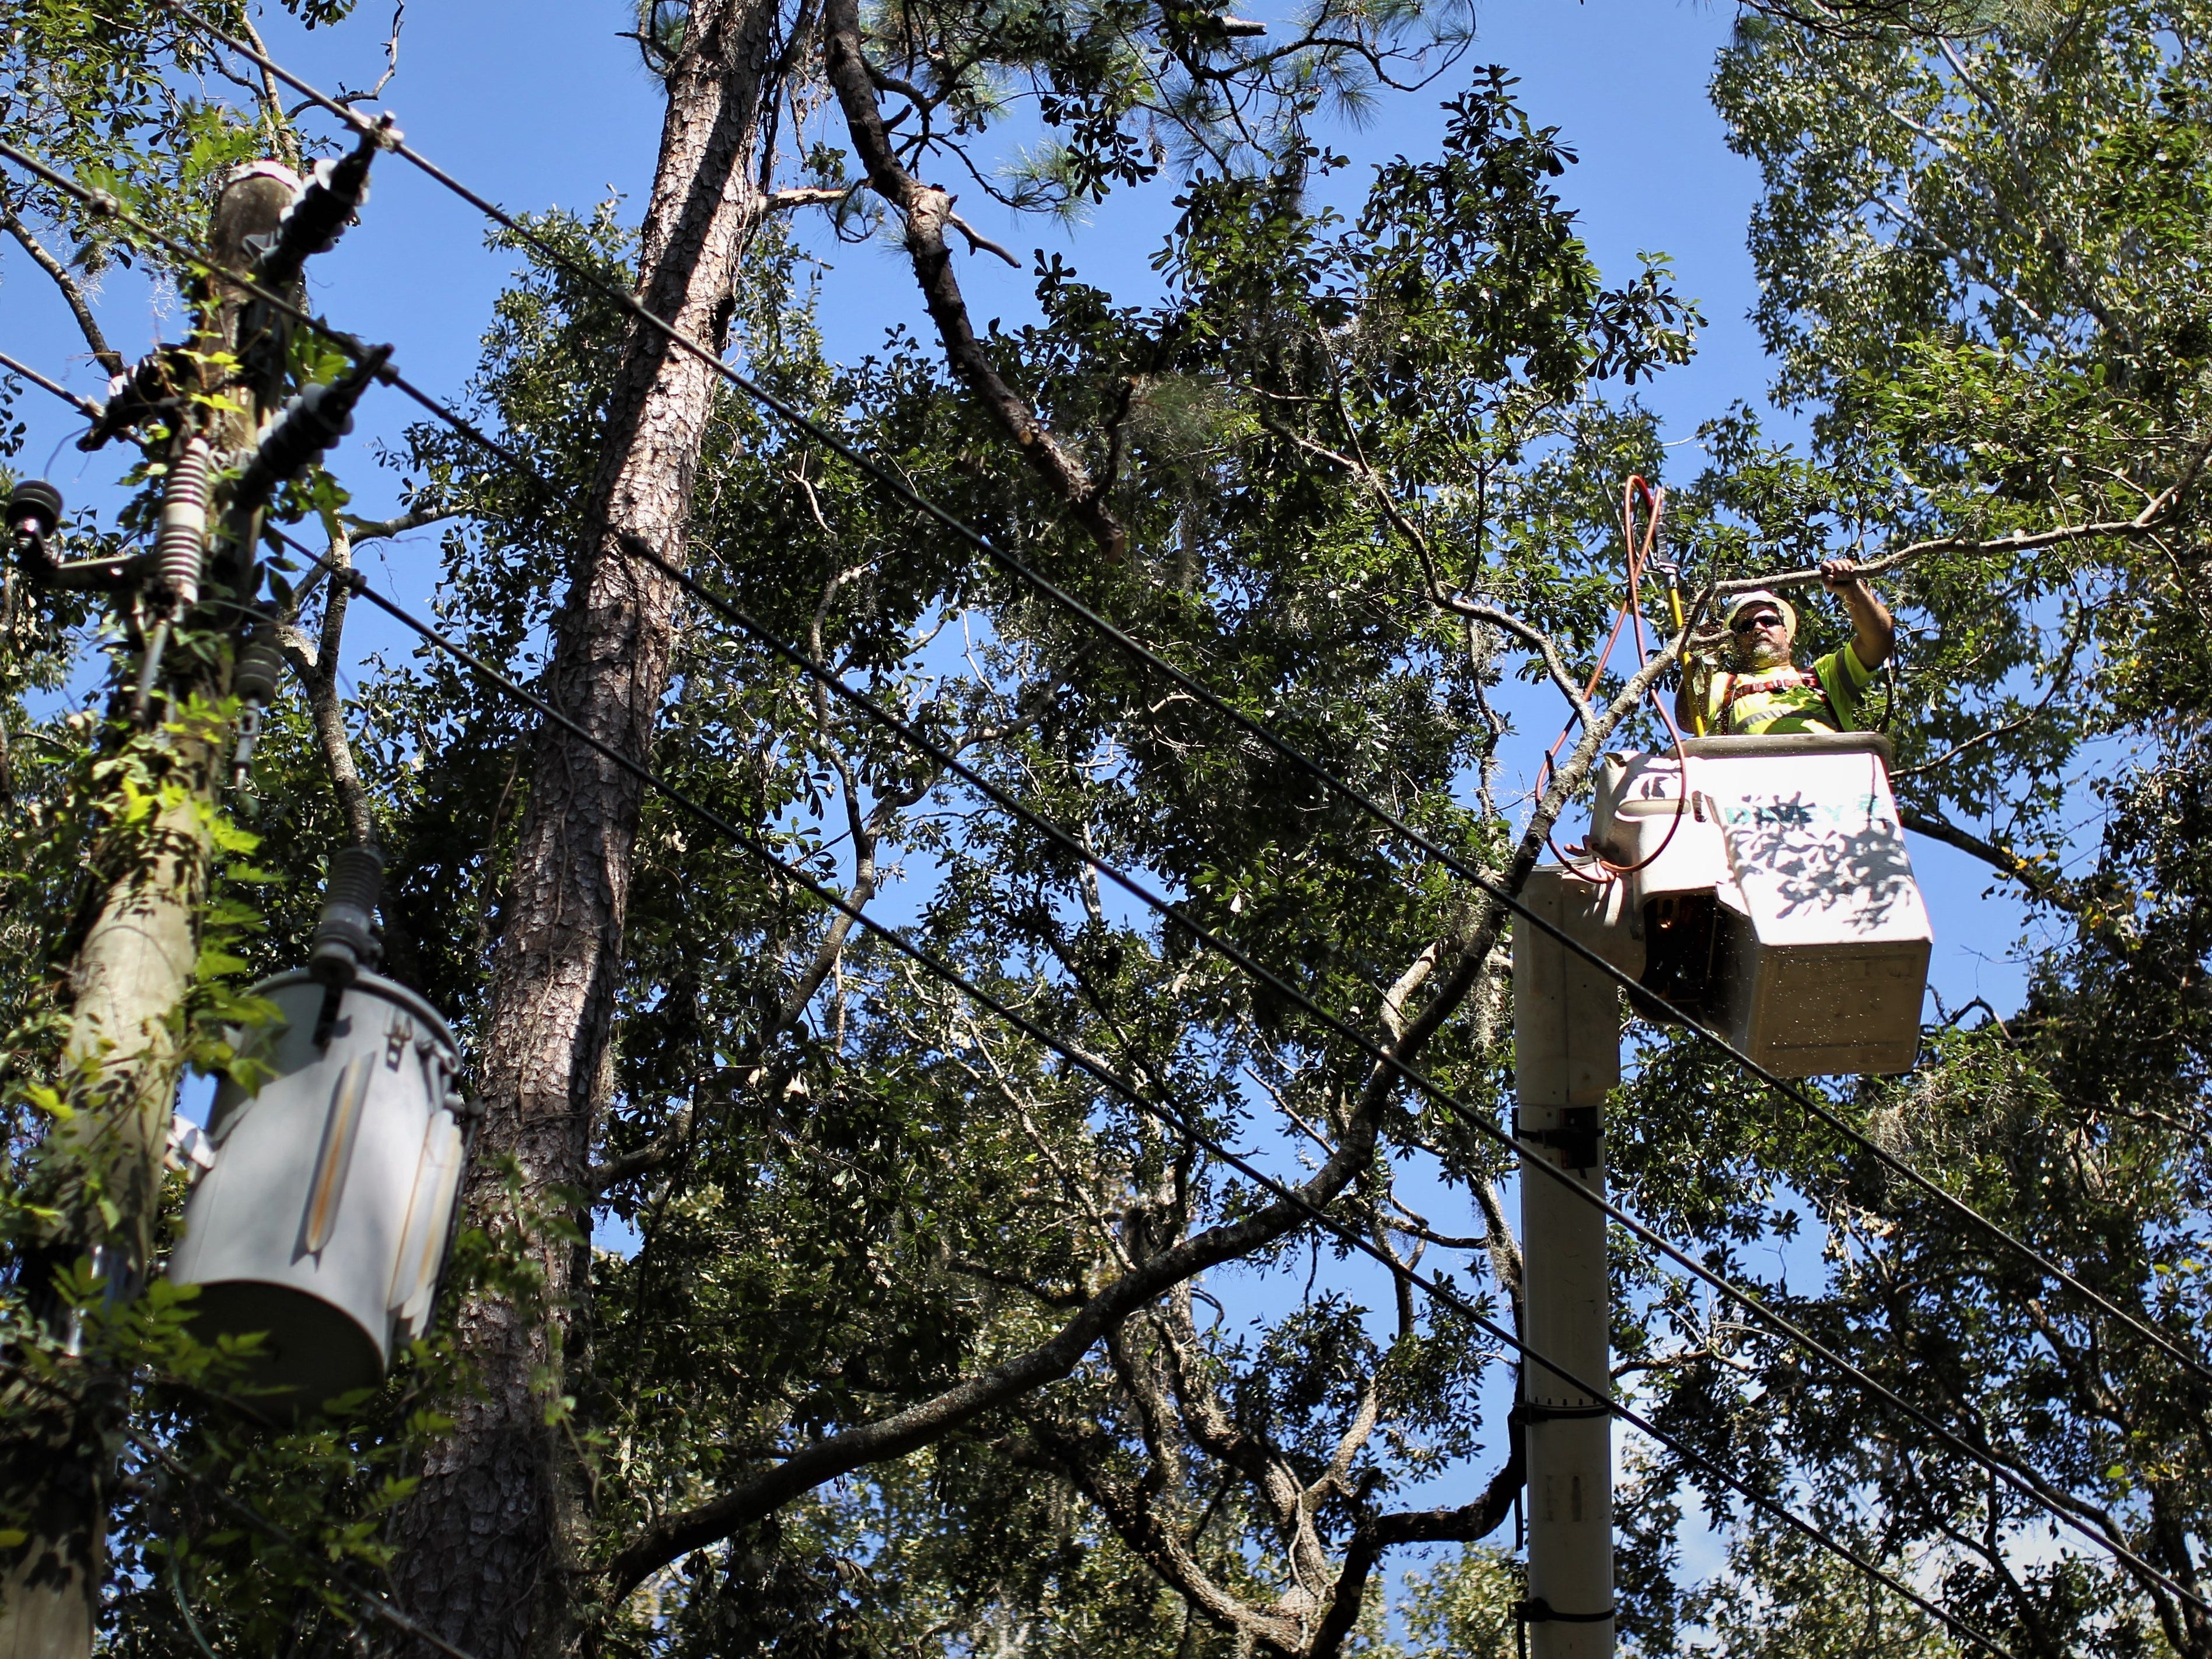 Recovery in Tallahassee on Lakeshore Drive following damage from Hurricane Michael.